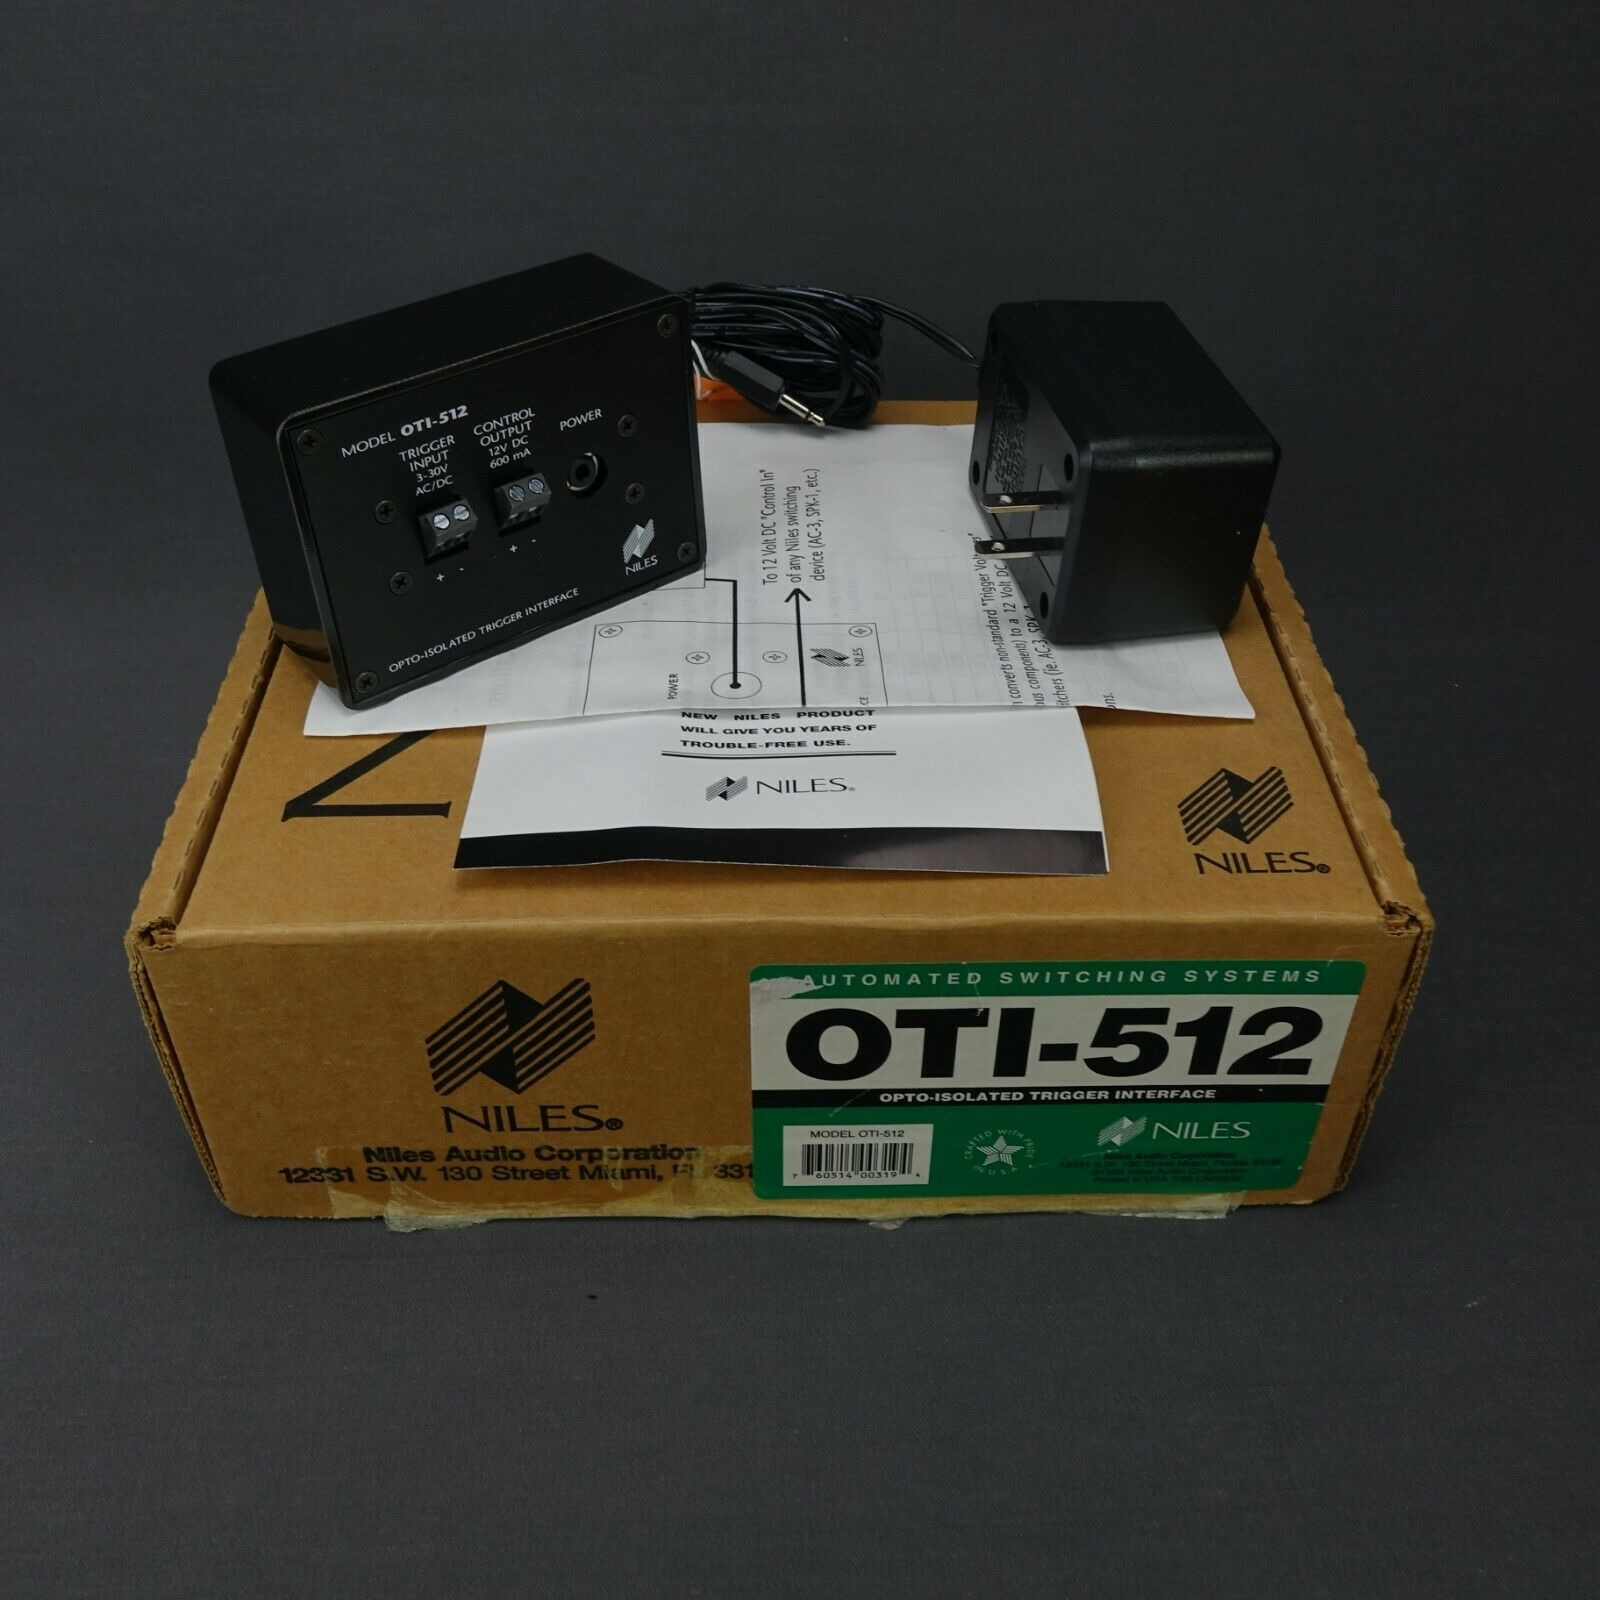 Niles OTI-512 Opto-Isolated Trigger Interface New in Box